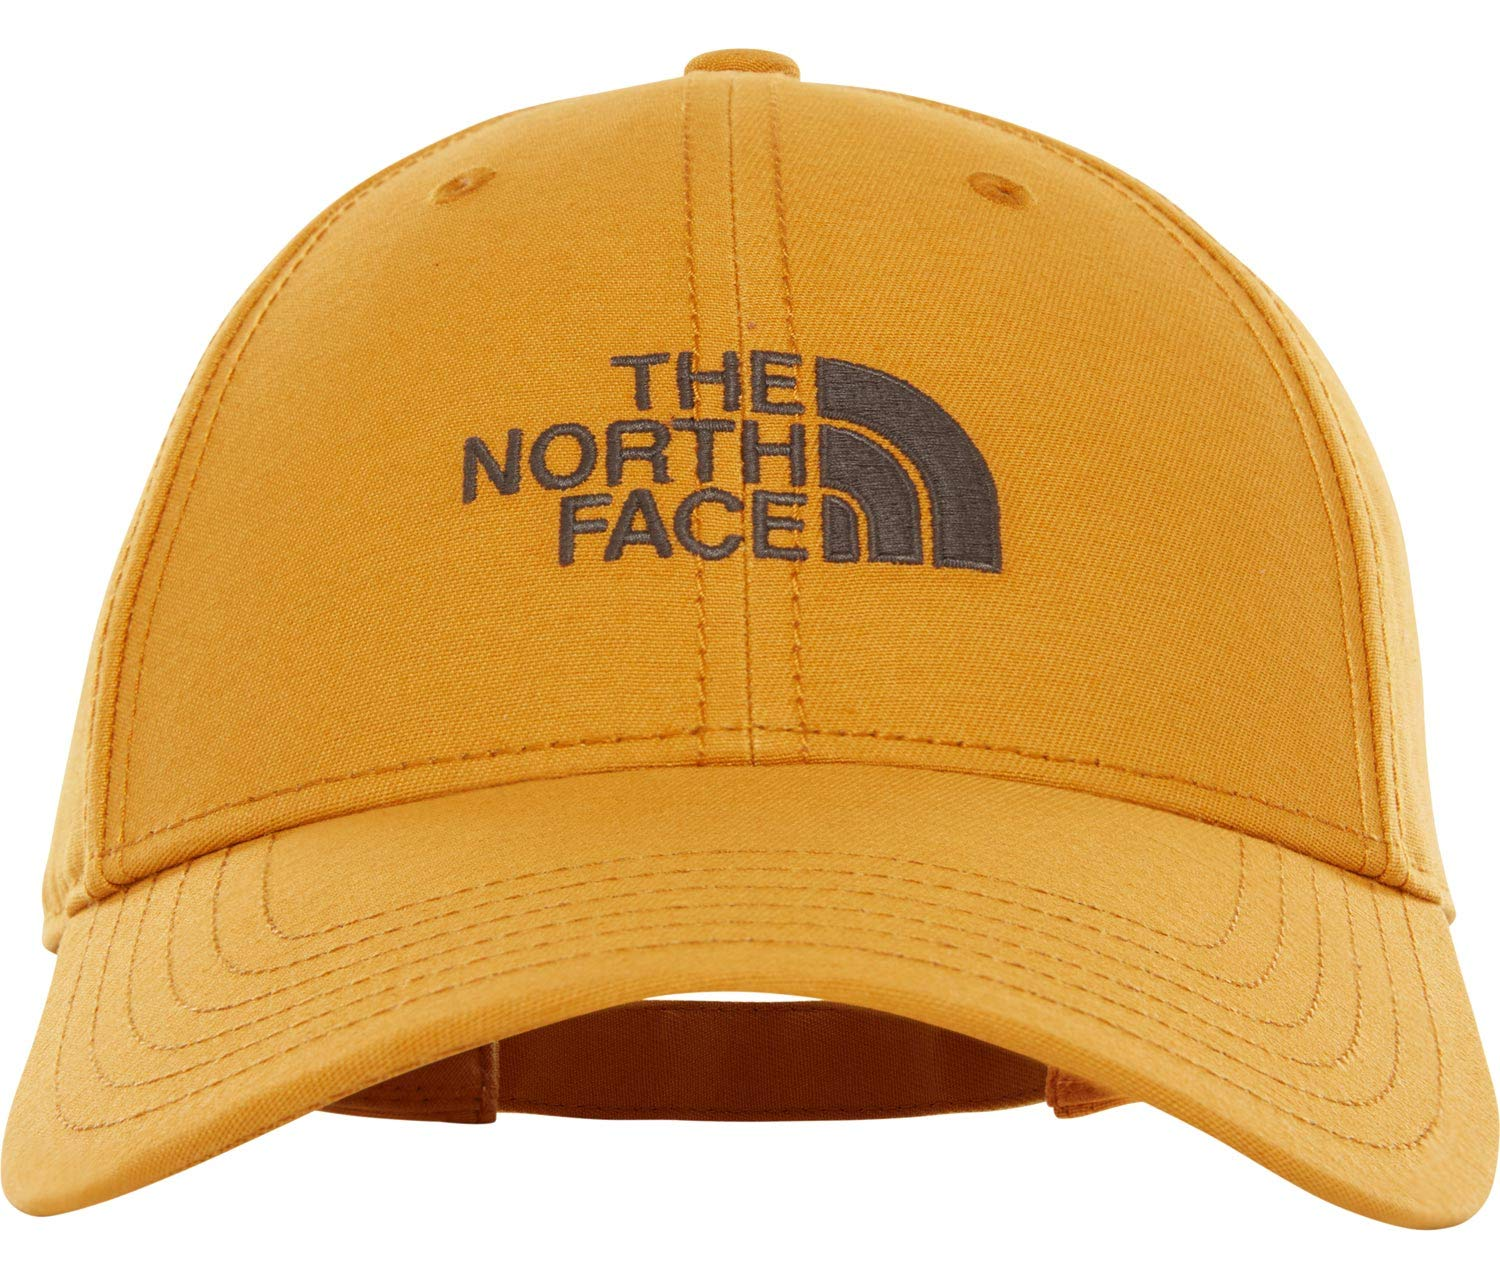 THE NORTH FACE Men s 66 Classic Hat a899063cab20